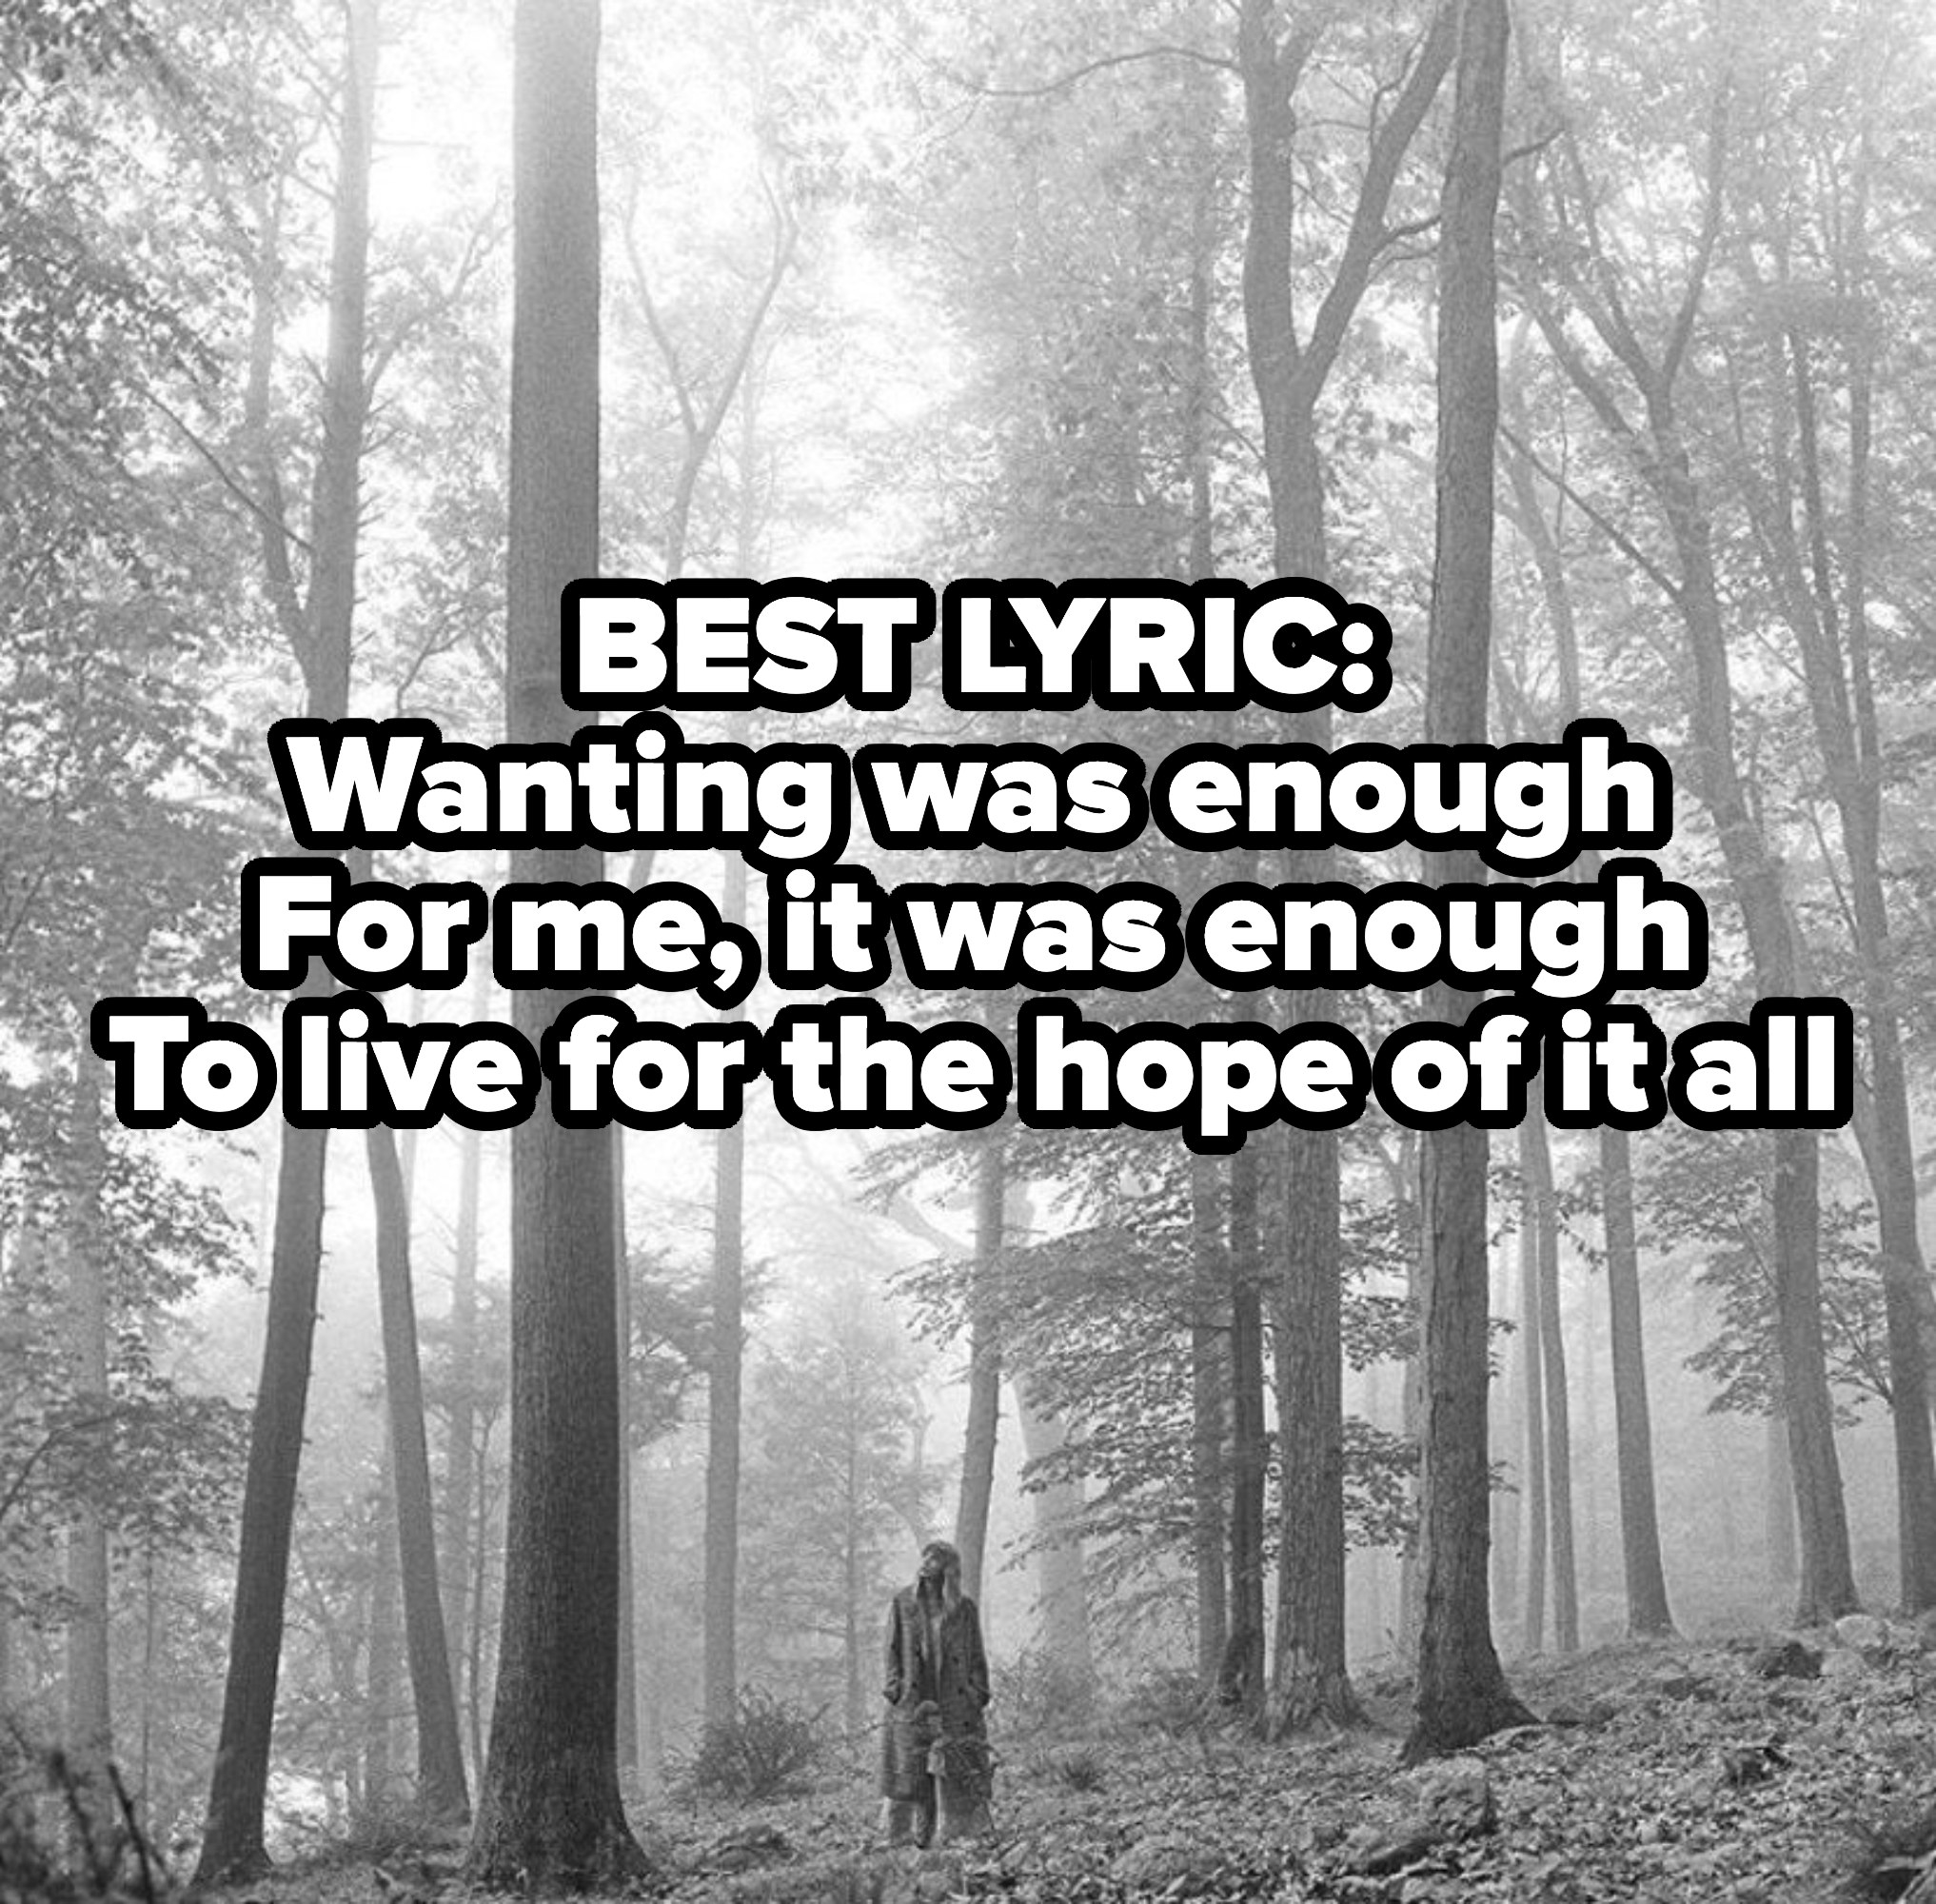 BEST LYRIC: Second, third, and hundredth chances Balancin' on breaking branches Those eyes add insult to injury